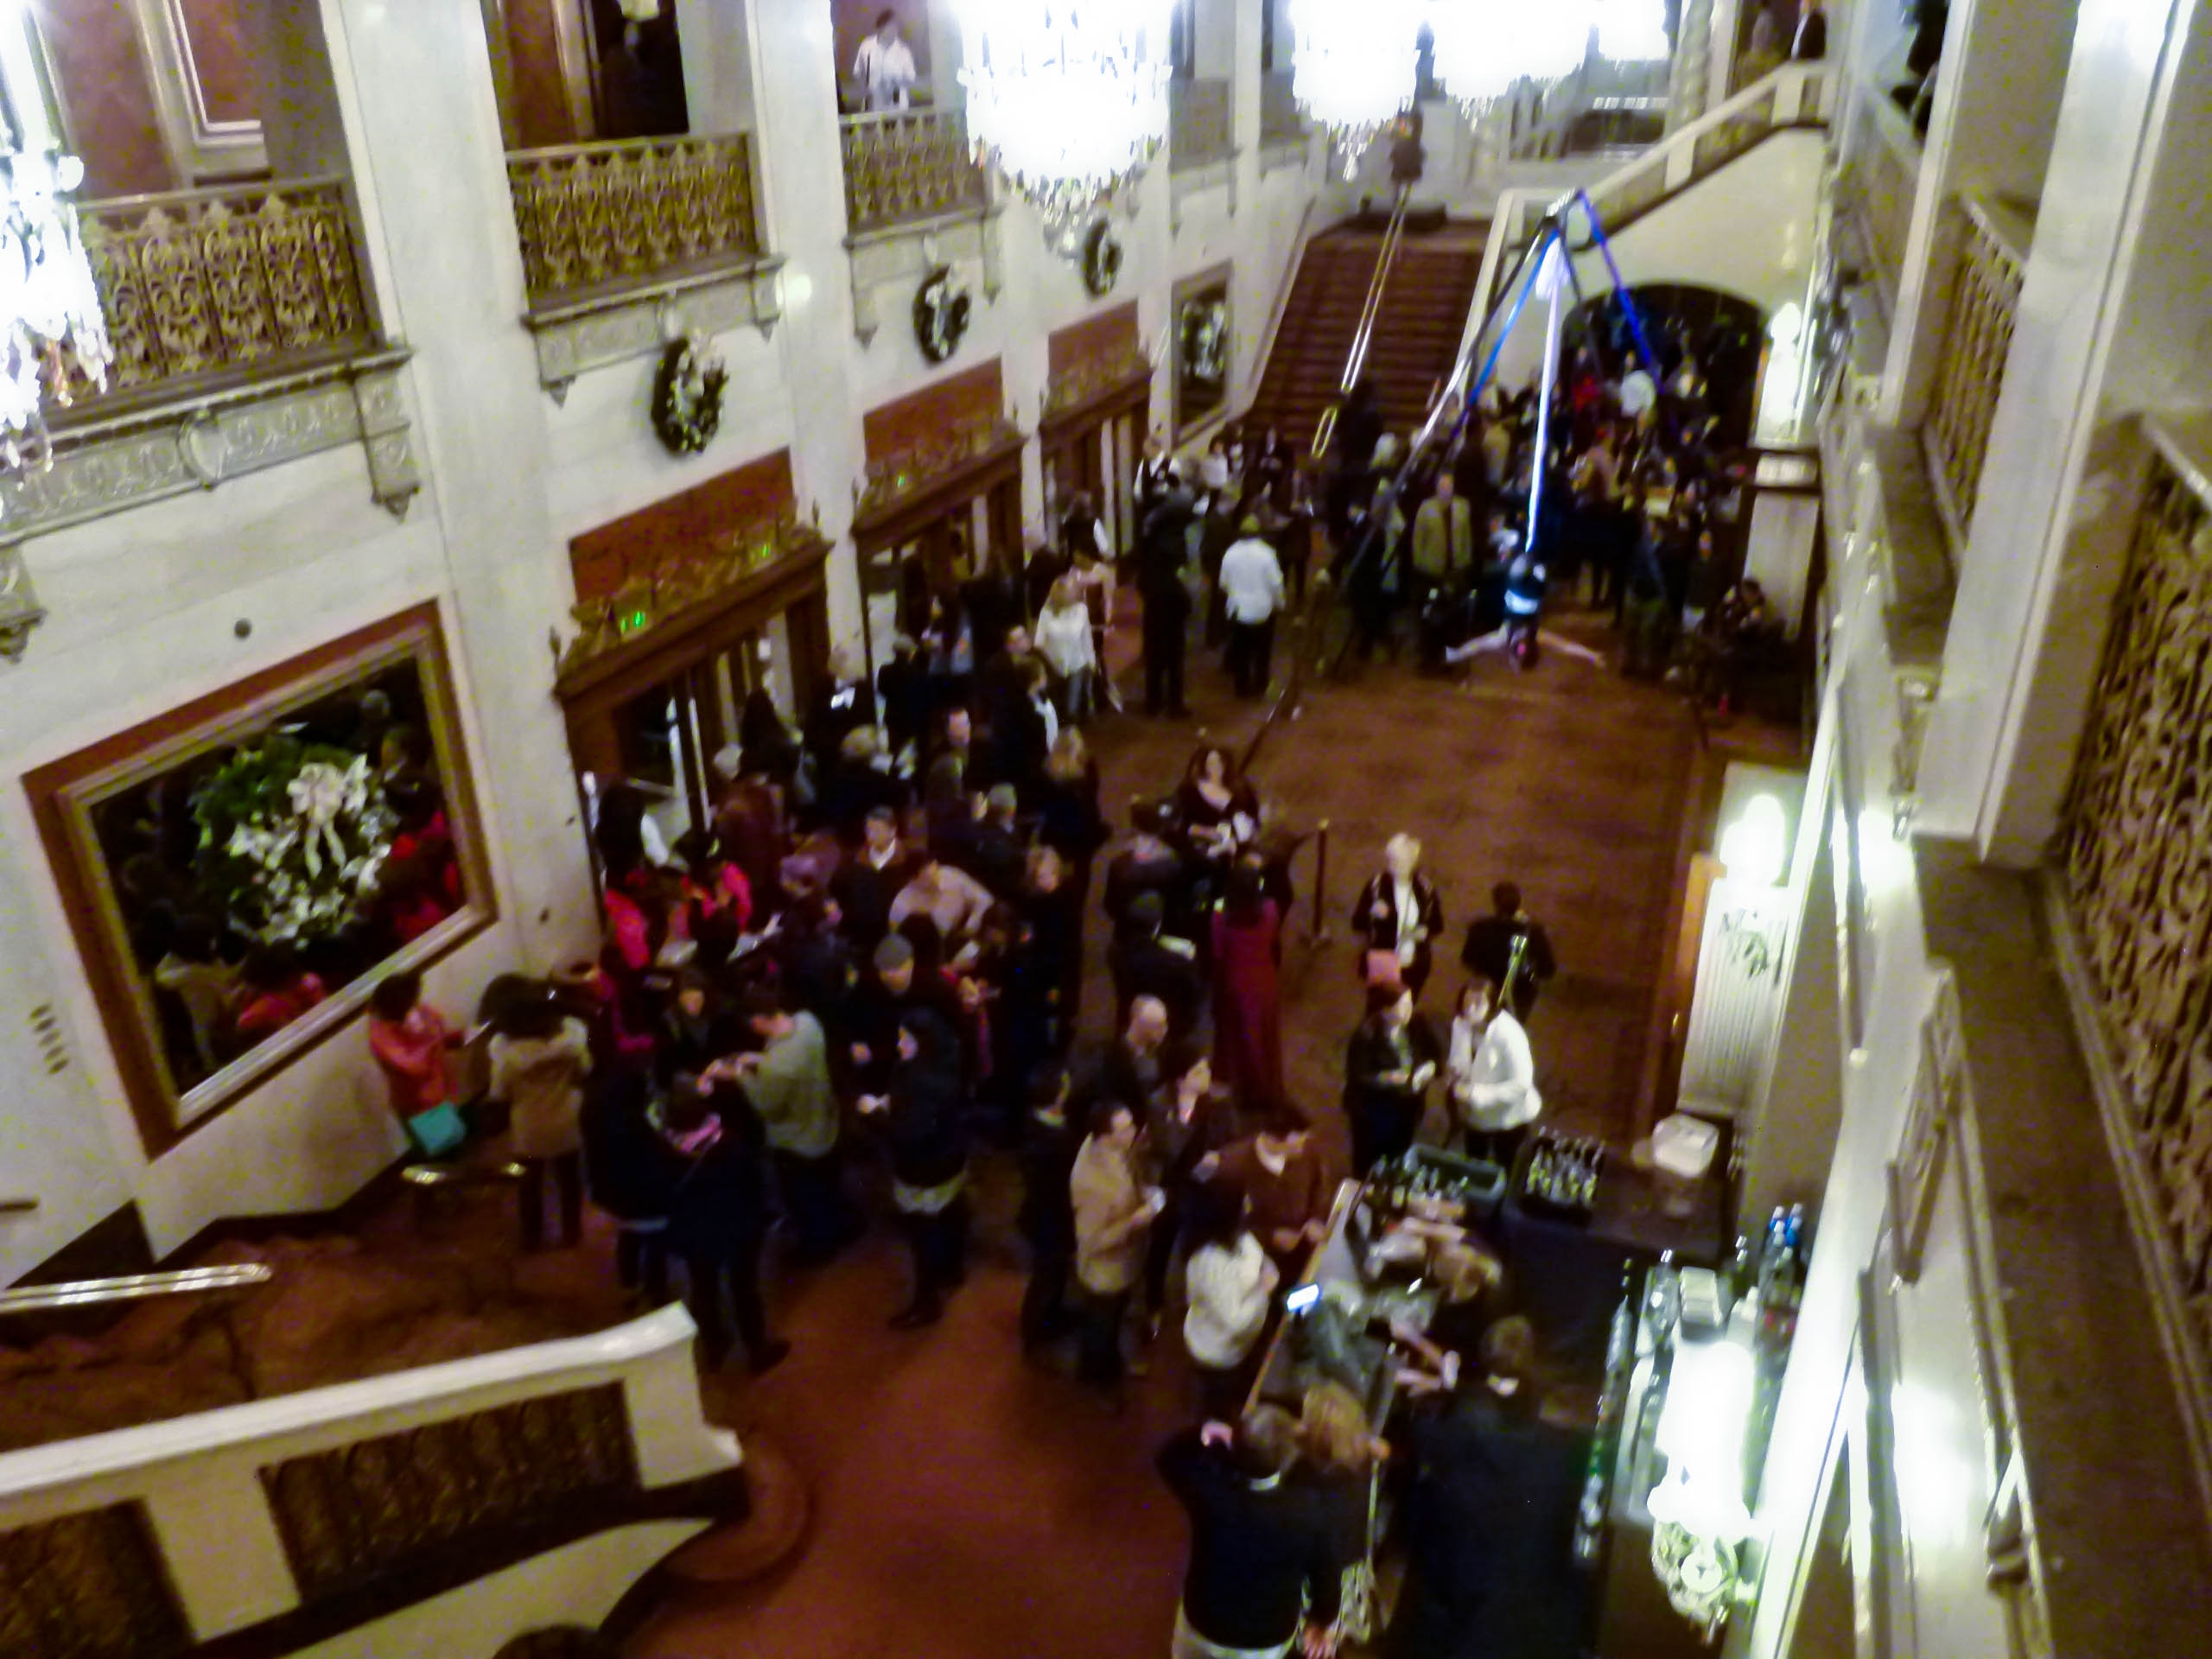 Attendees enjoying The Chocoalate Bar event in the gorgeous lobby of the Bennedum.